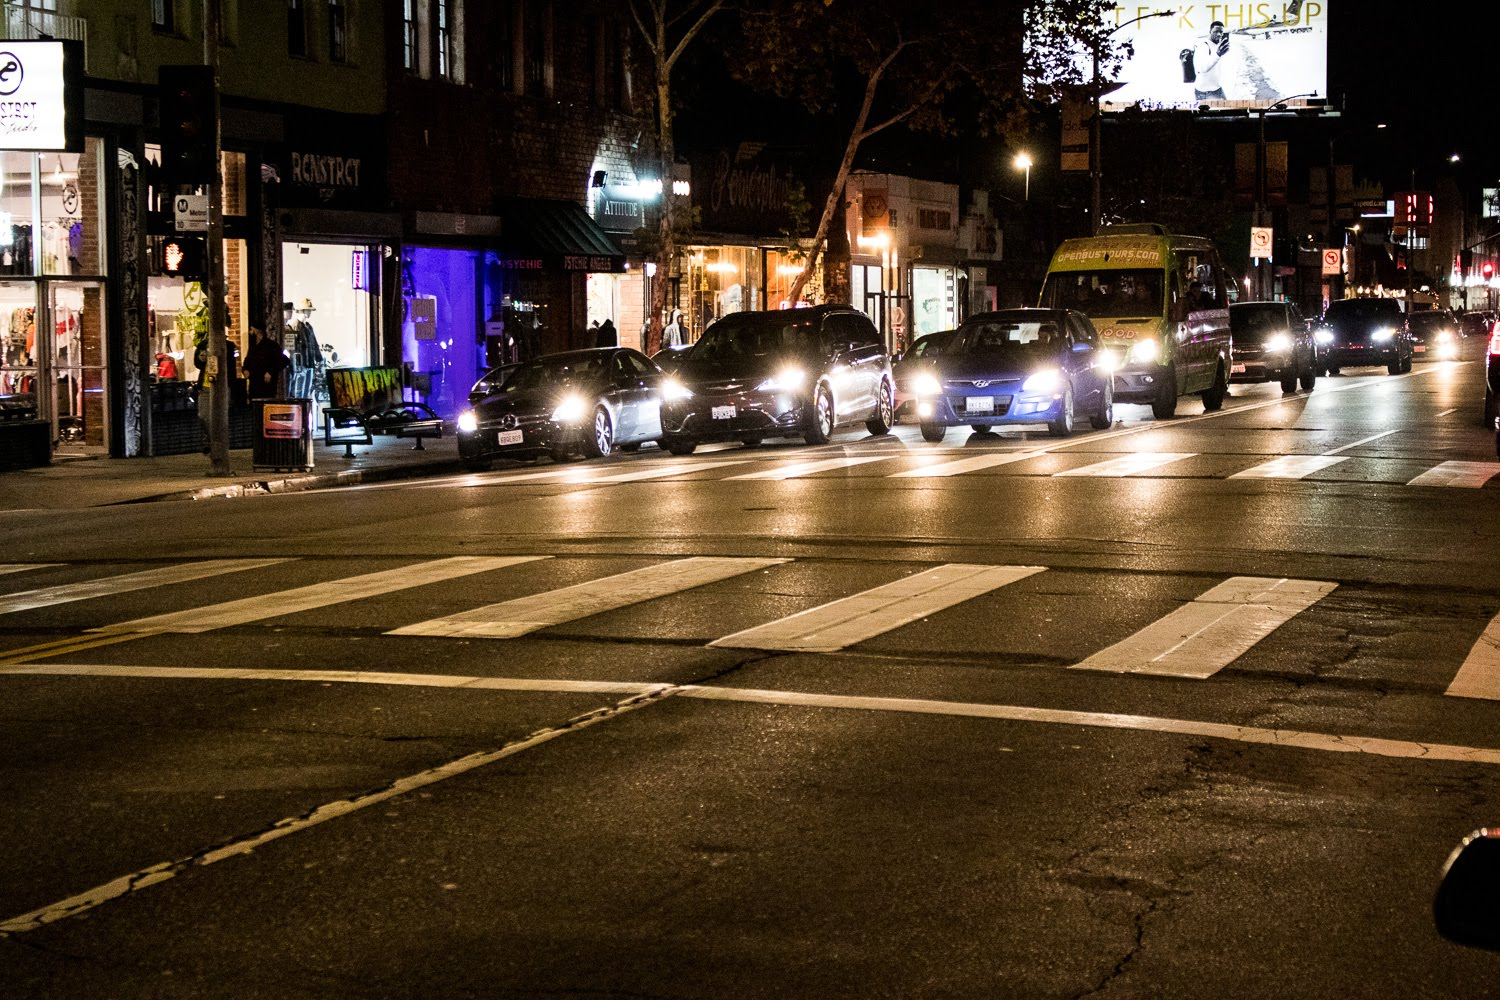 Bronx, NY - Pedestrian Fatality Under Investigation at Broadway and 262nd St